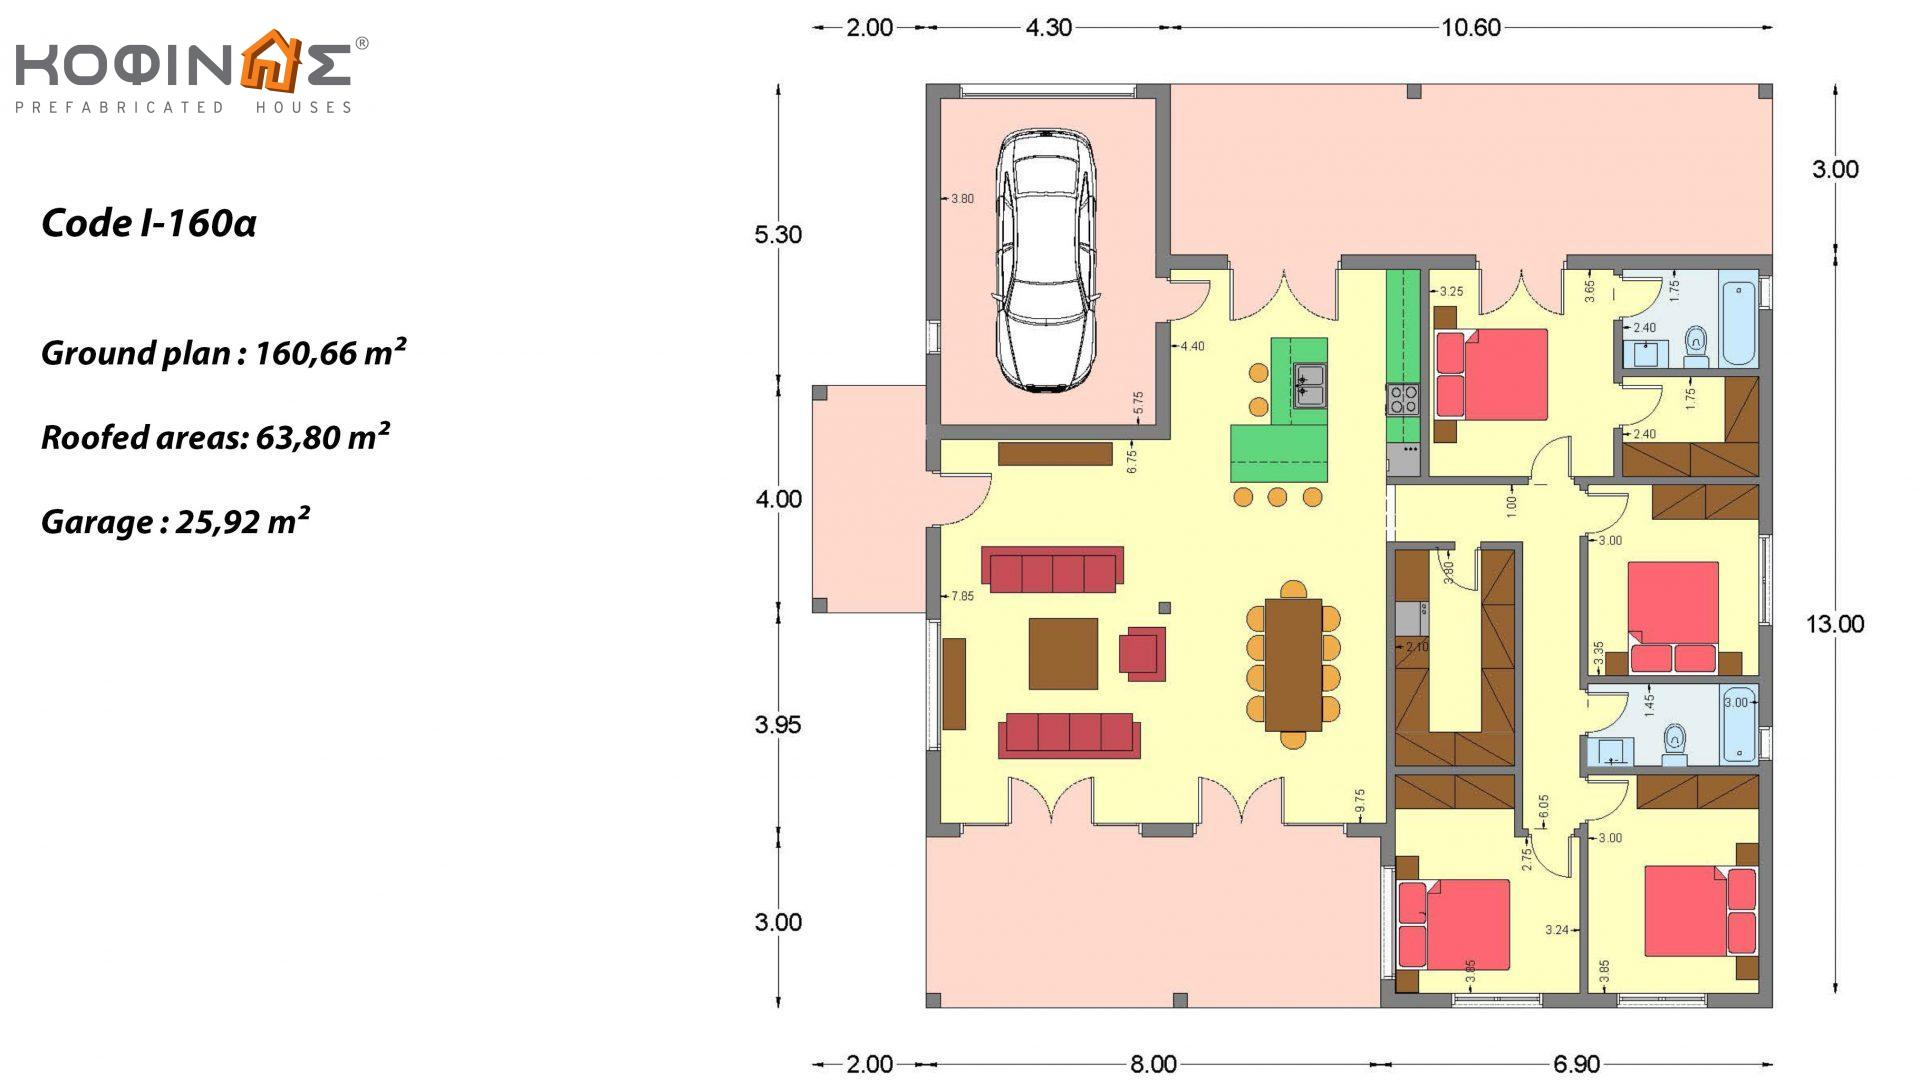 1-story house Ι-160a, total surface of 160,66 m², roofed areas 63,80 m²